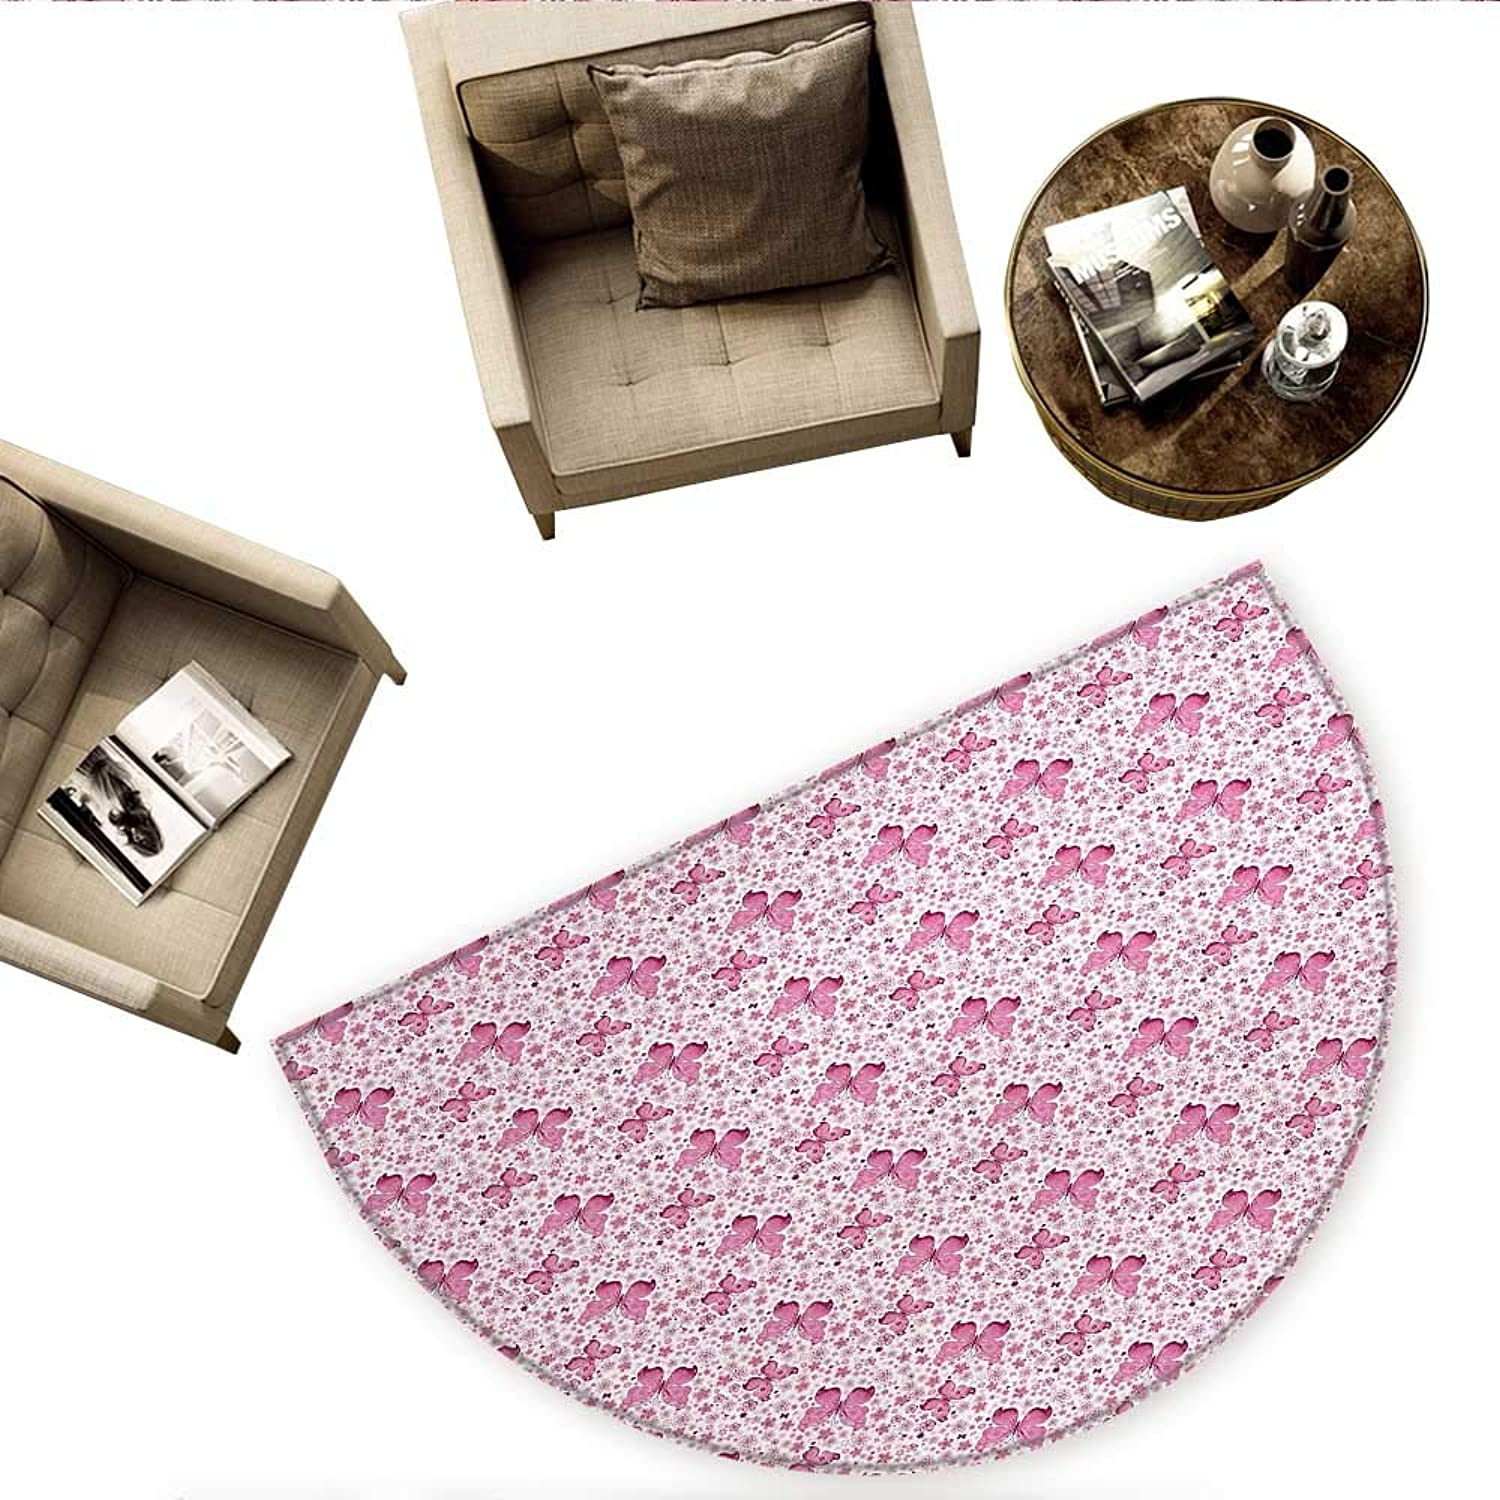 Butterfly Semicircle Doormat Floral Arrangement and Cute Hearts Background Animals with Vibrant colors Halfmoon doormats H 59  xD 88.6  Pale Pink White